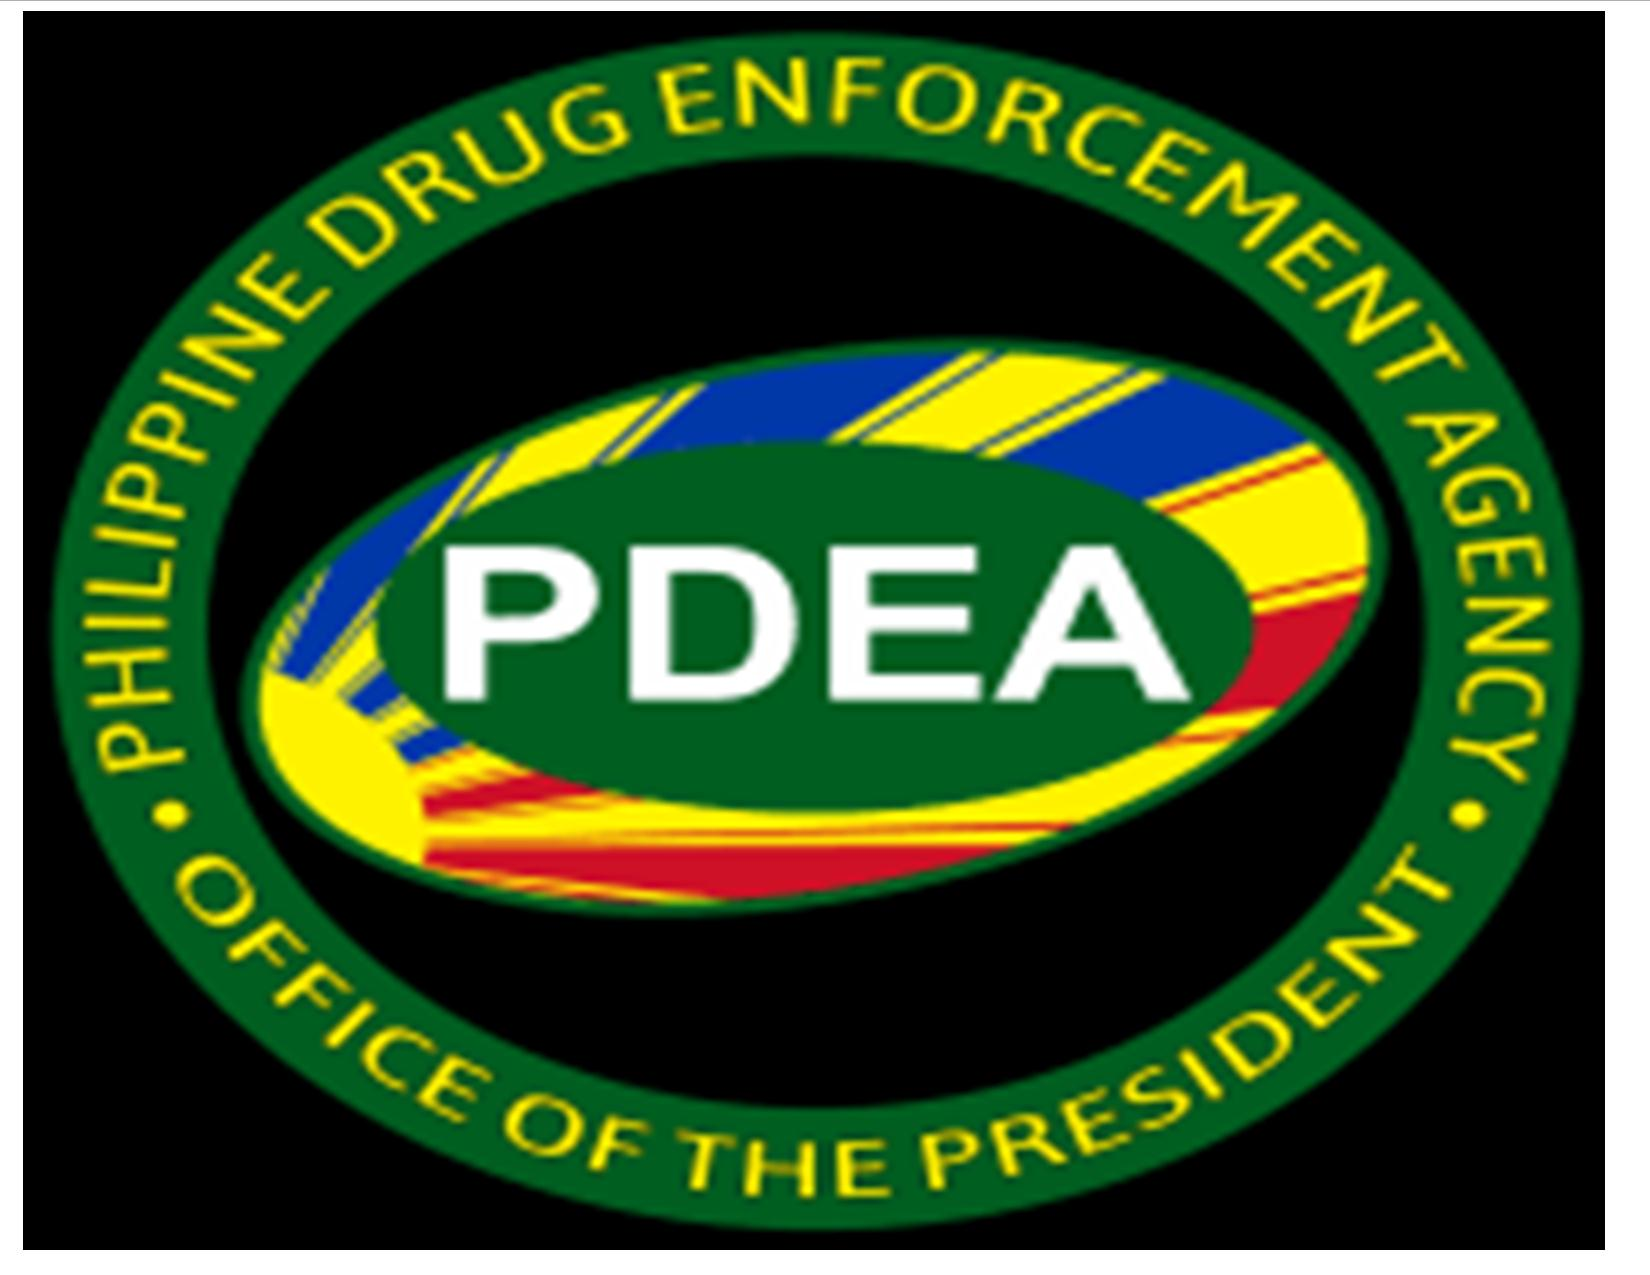 philippine drug enforcement agency